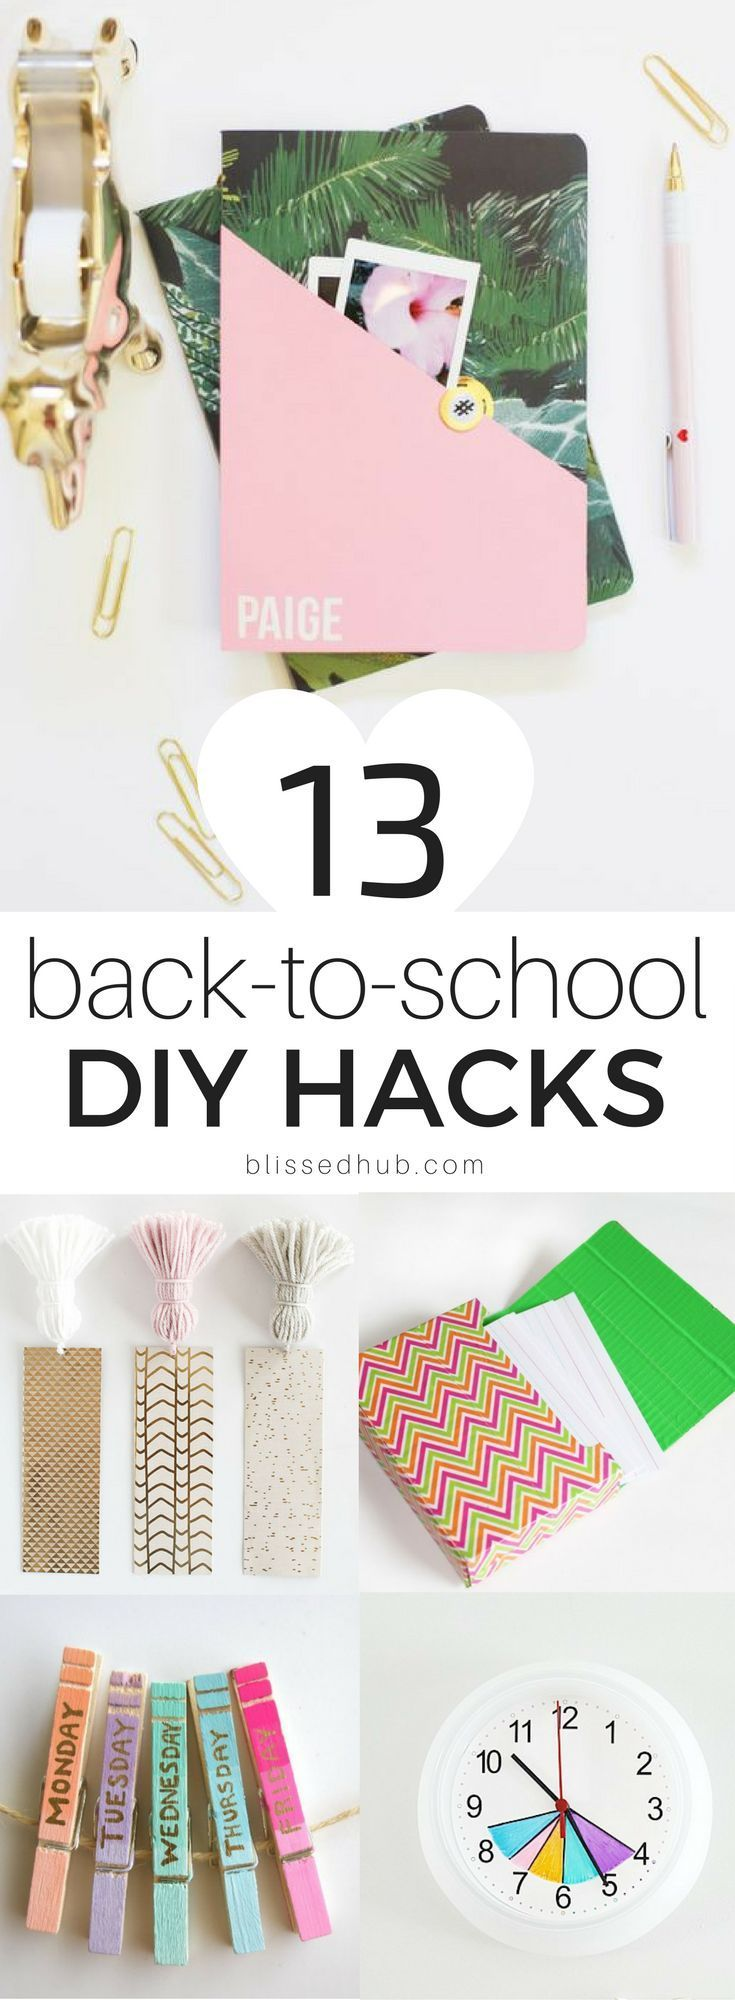 13 DIY backtoschool hacks you need to try Informations About 13 DIY BackToSchoolHacks die Sie ausprobieren müssen Pin You can easily use my profile to examine differ...